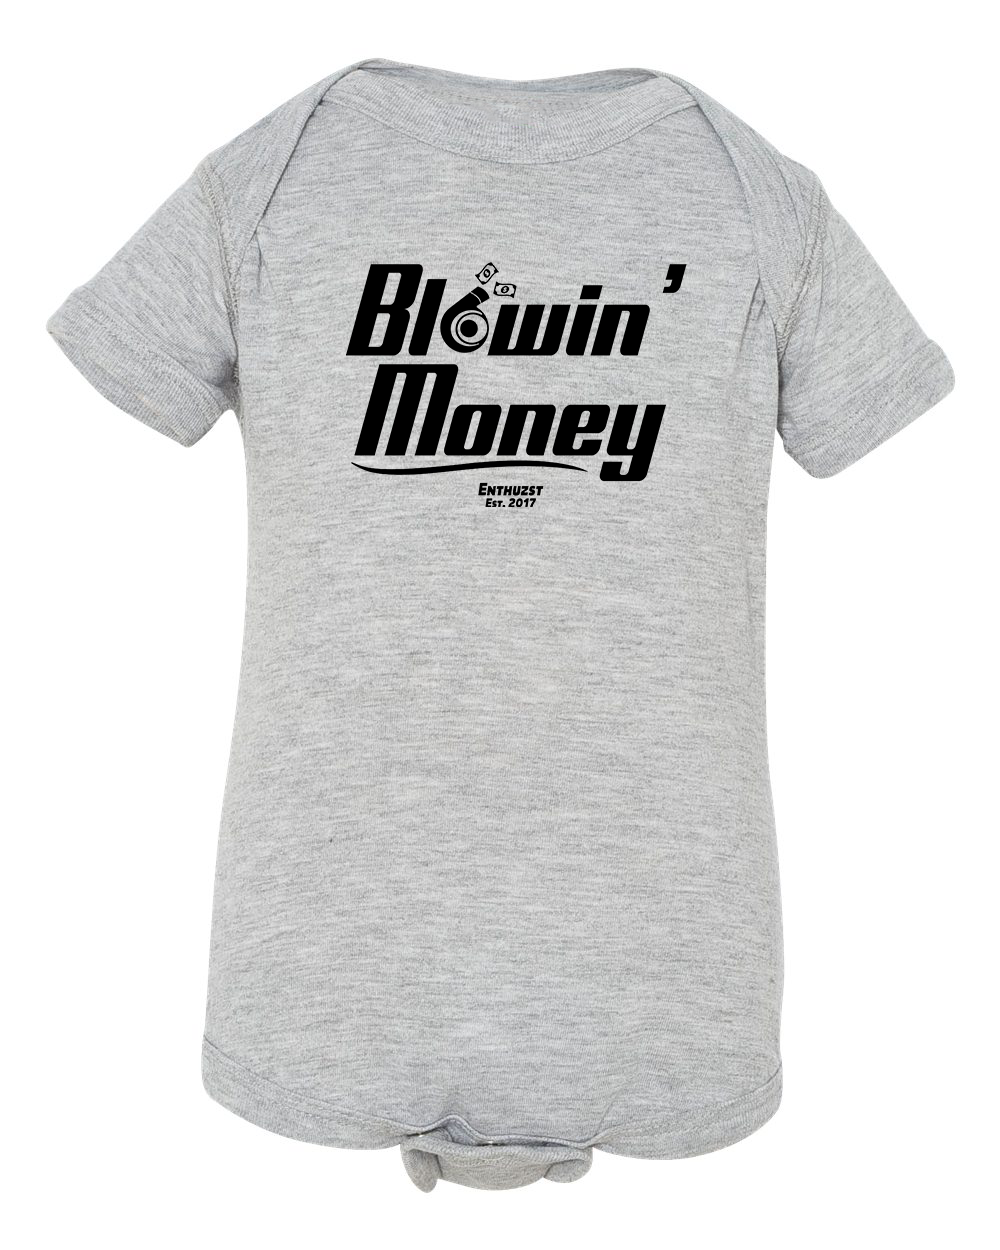 Blowin' Money Onesie